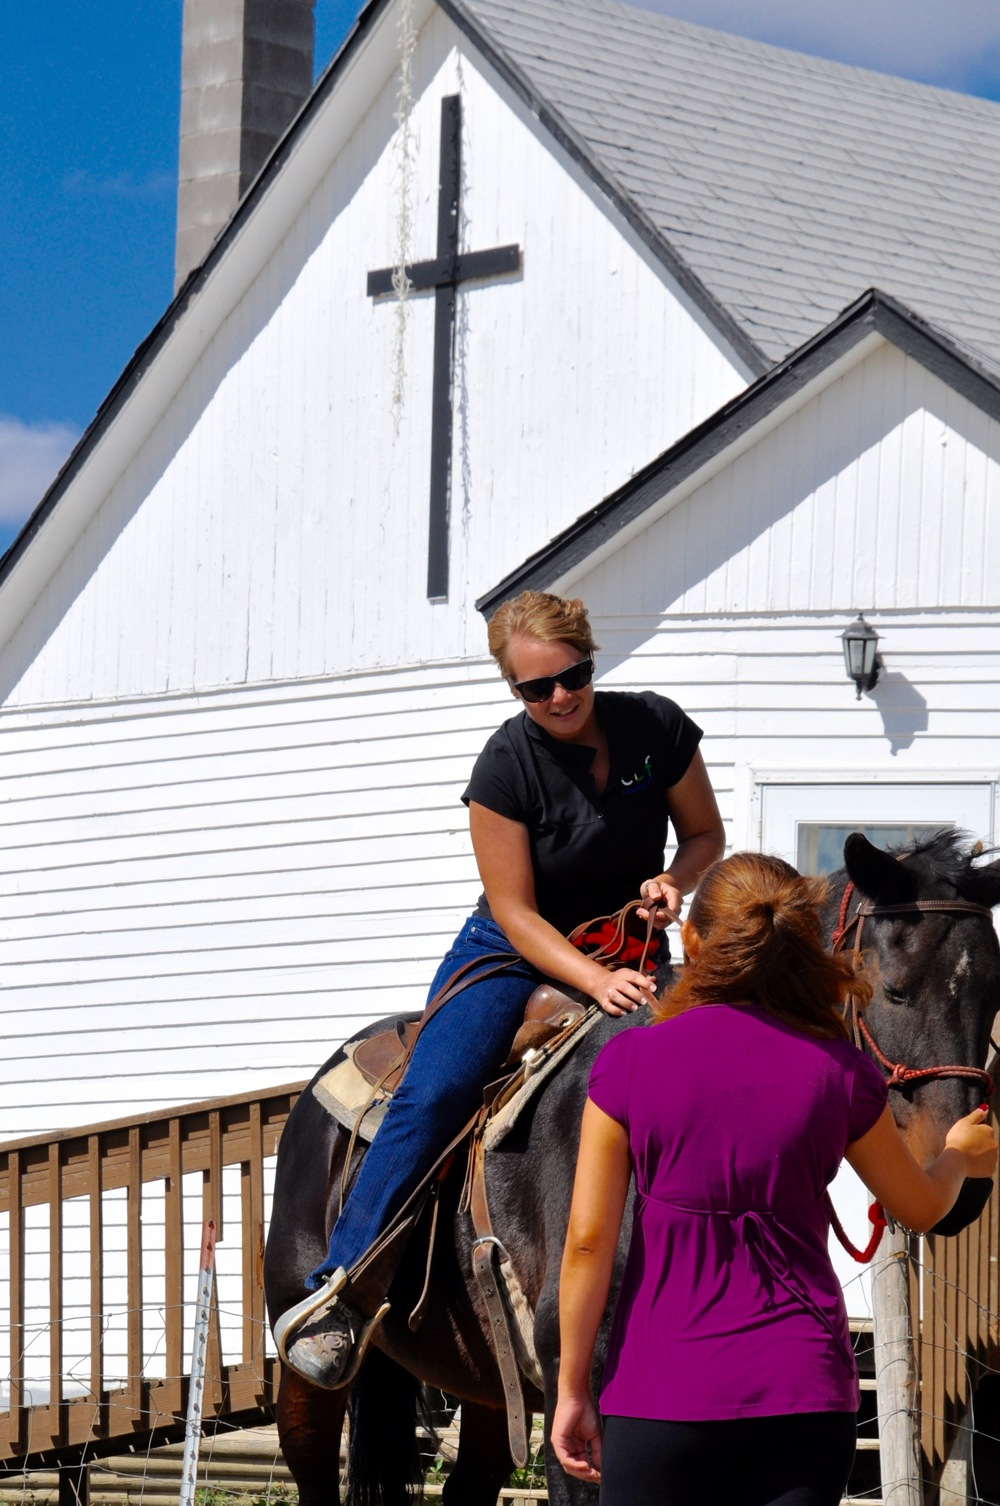 Megan Pike, CBFAR Assistant Coordinator, learning from Tameka, a 17 year old who works with the horses, how to ride Brownie, one of  several horses in the ministry.  photo courtesy of Stephen Reeves